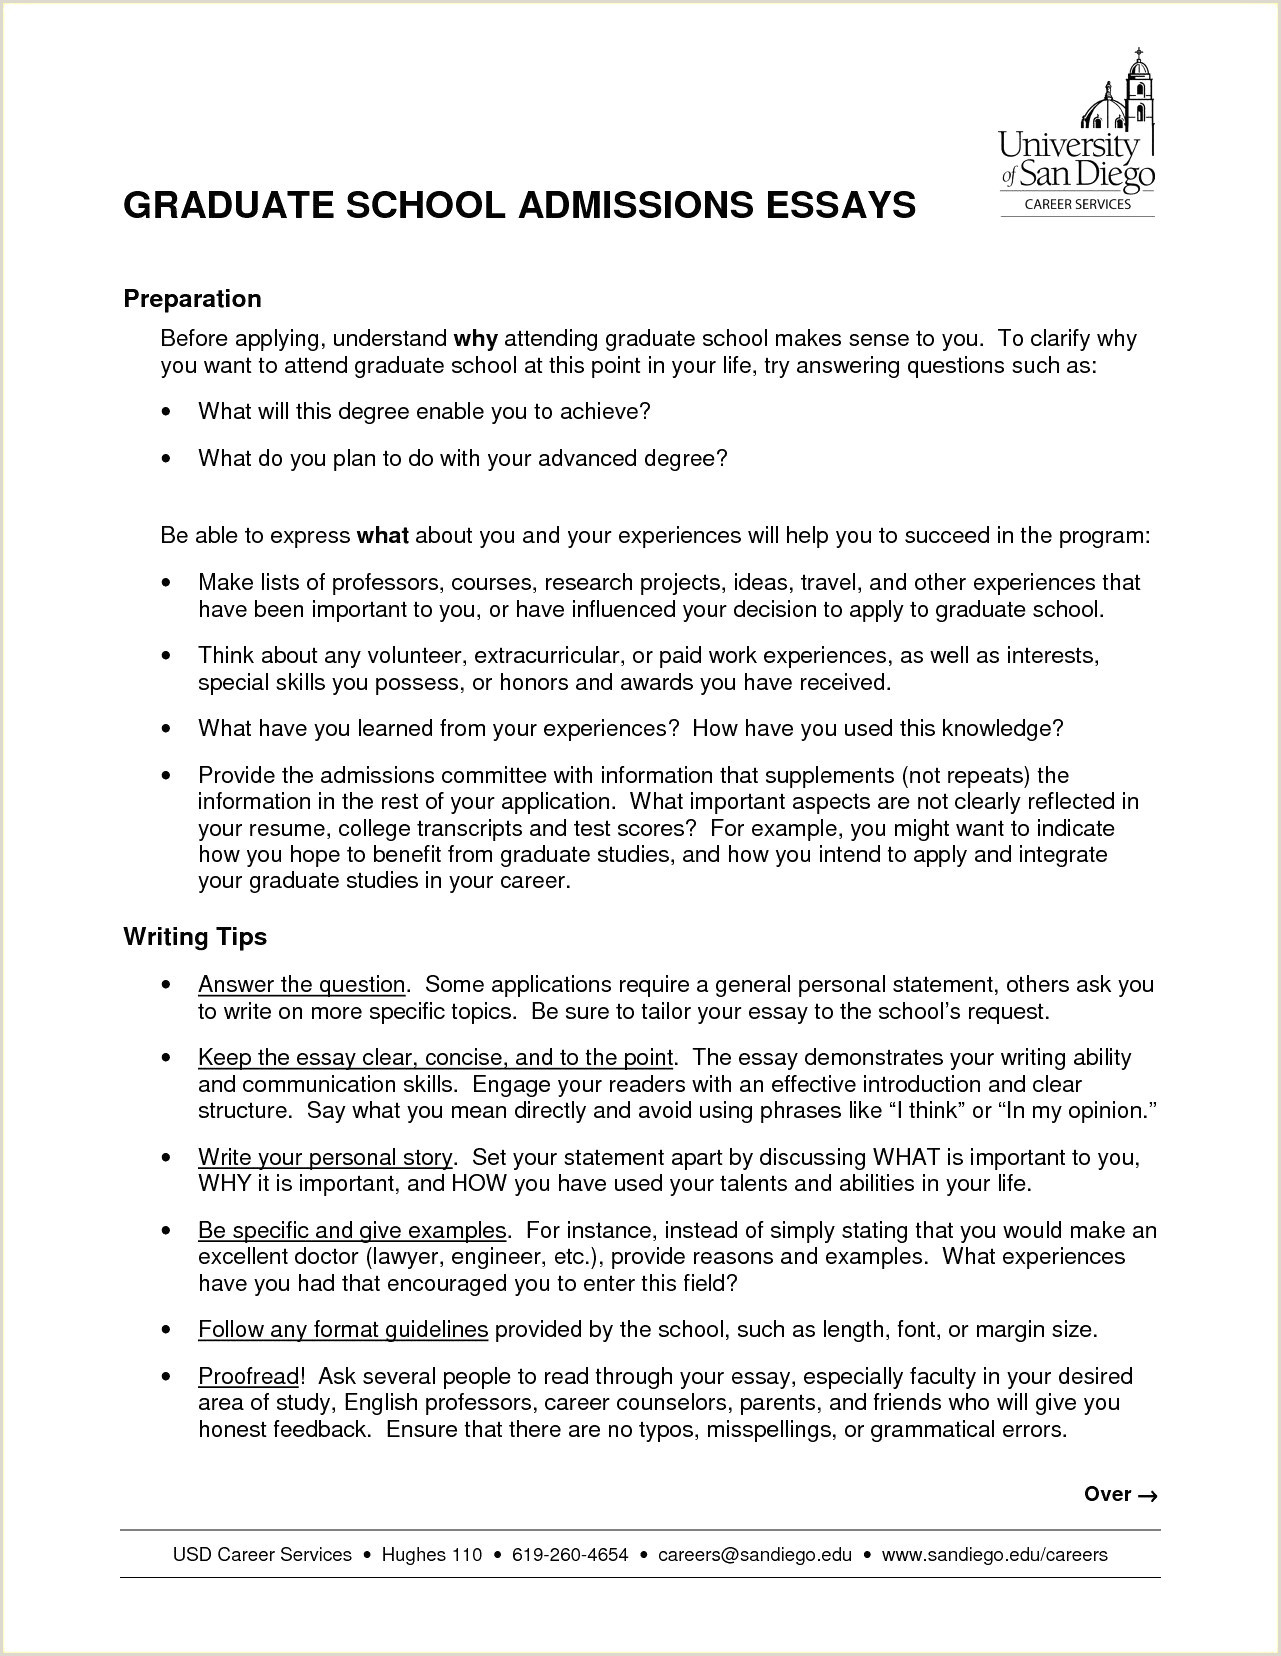 Admissions Officer Cover Letter 10 Preparing A Resume and Cover Letter